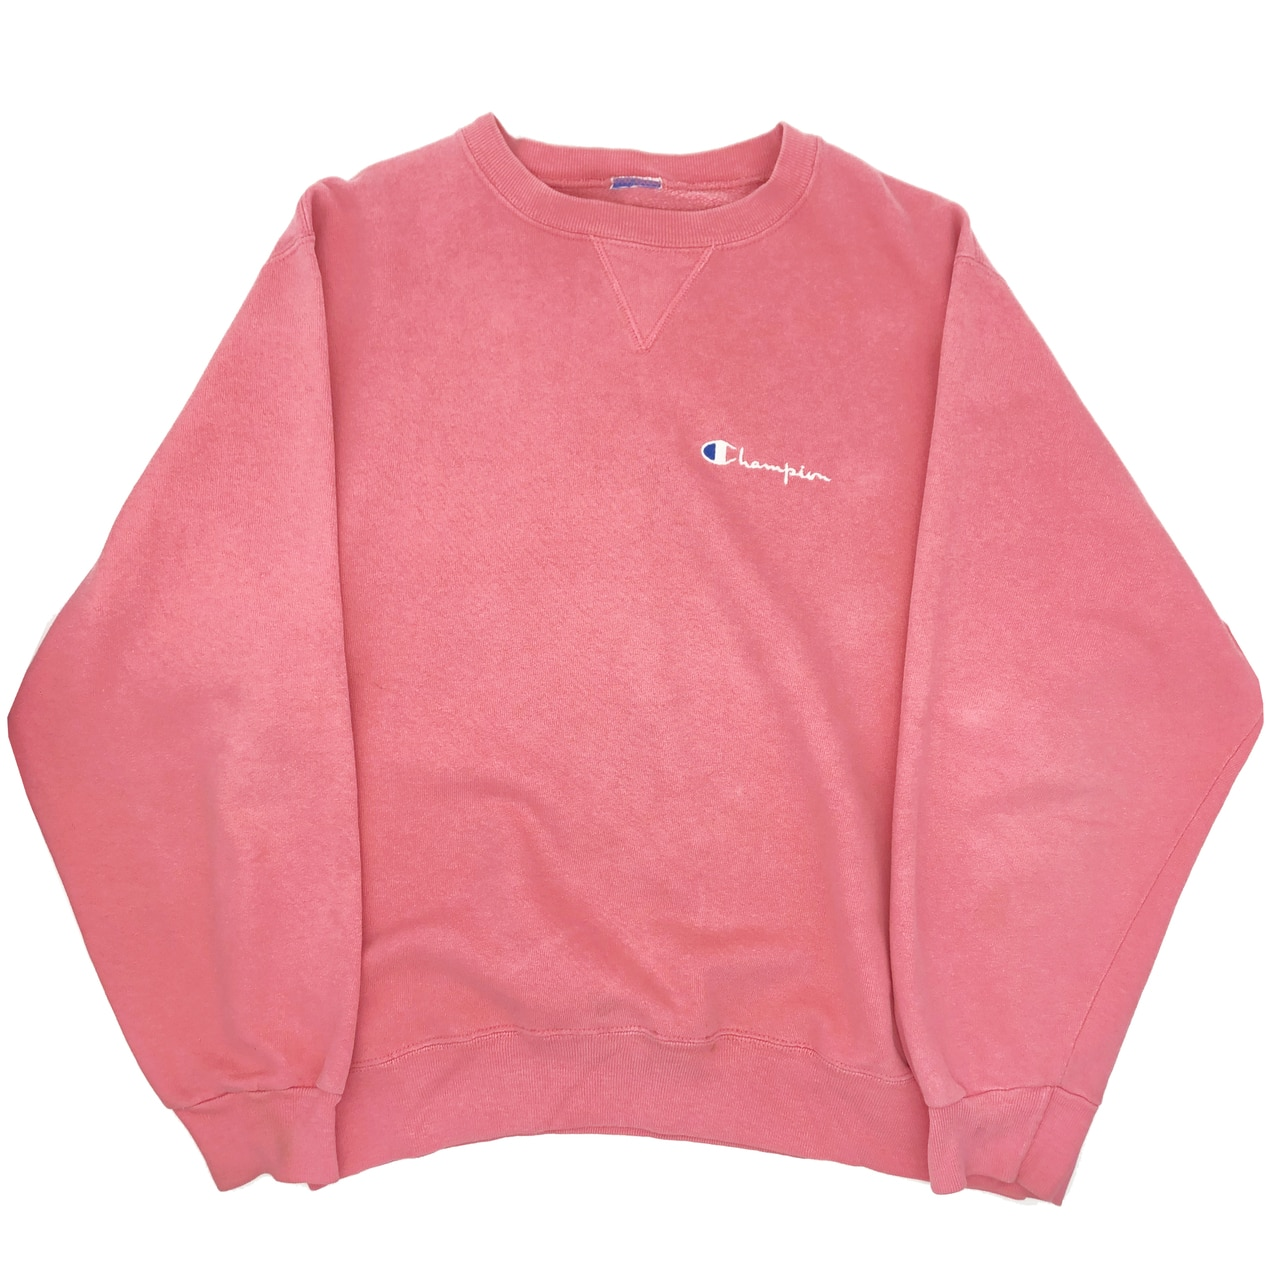 Vintage early 90s Champion pale pink Crewneck by Champion, available on firsttwelvemarket.com for $40 Elsa Hosk Top Exact Product